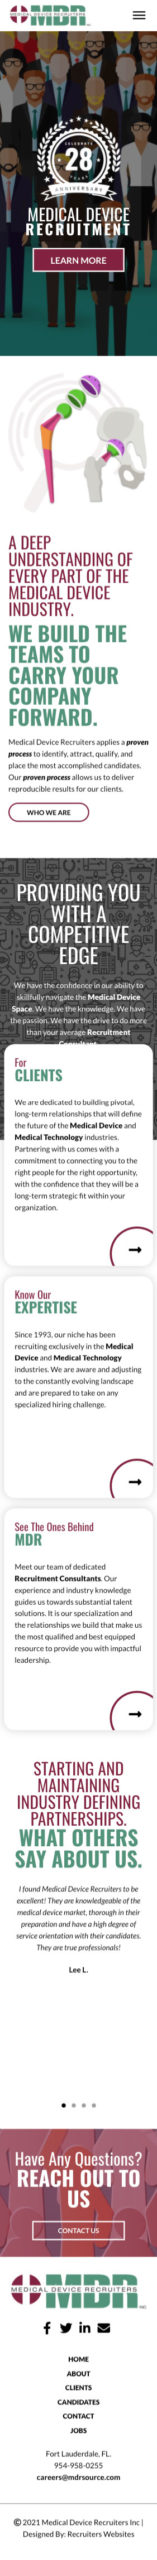 Medical Device Recruiters, Inc.